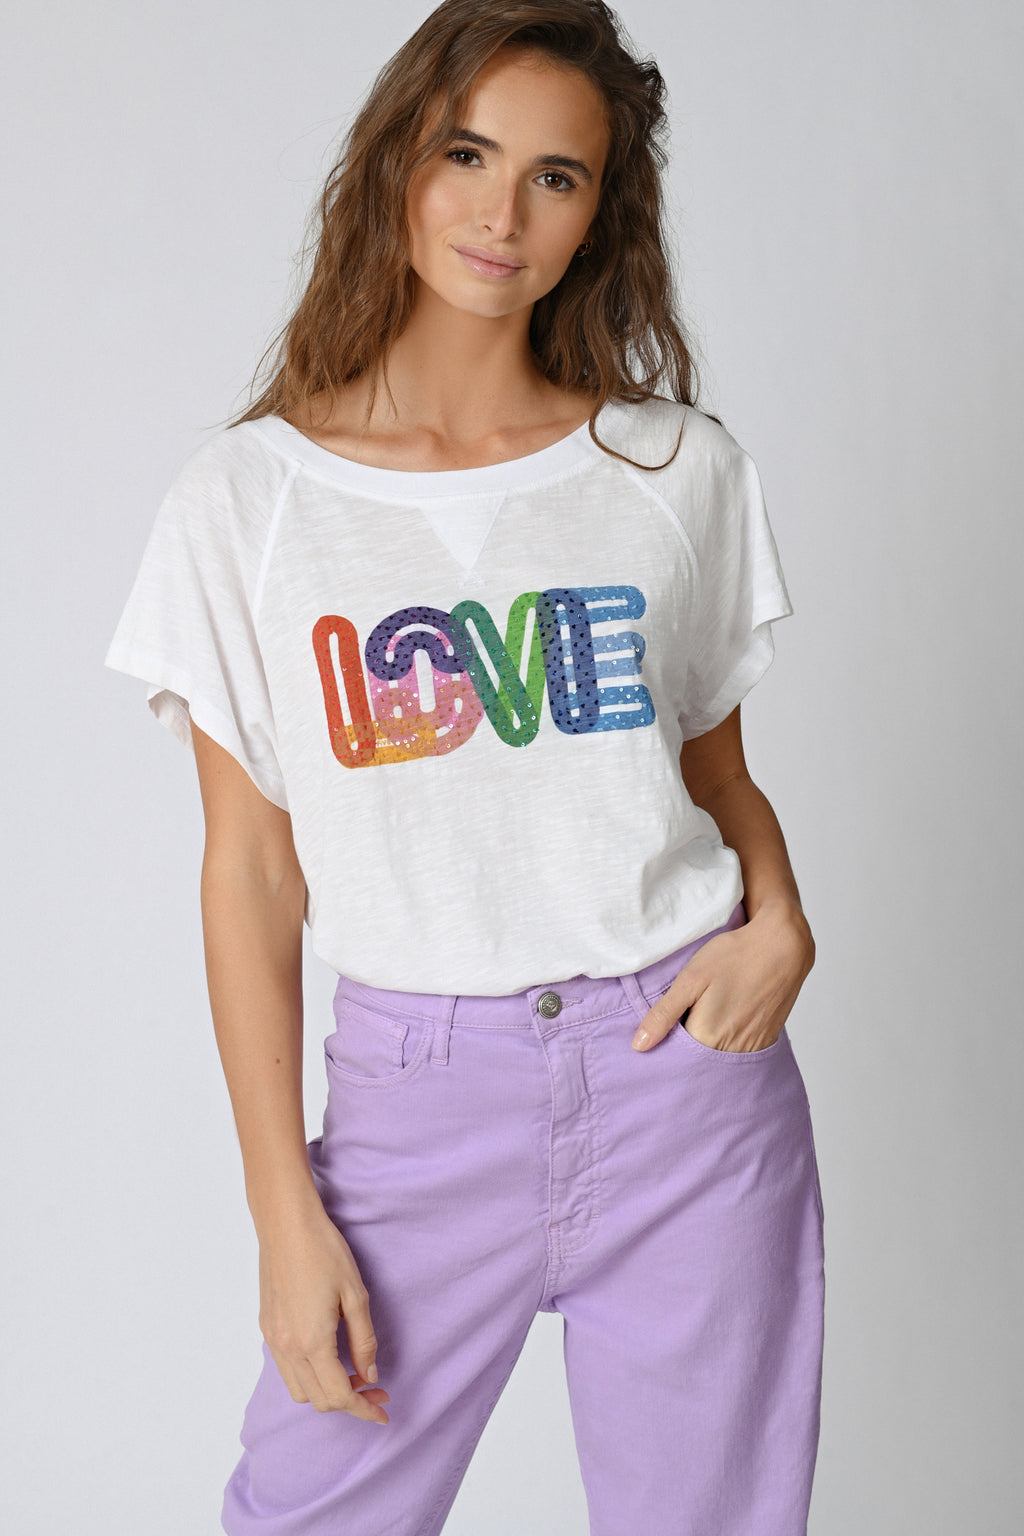 Five Jeans TSE2126 Rainbow Love T-Shirt White